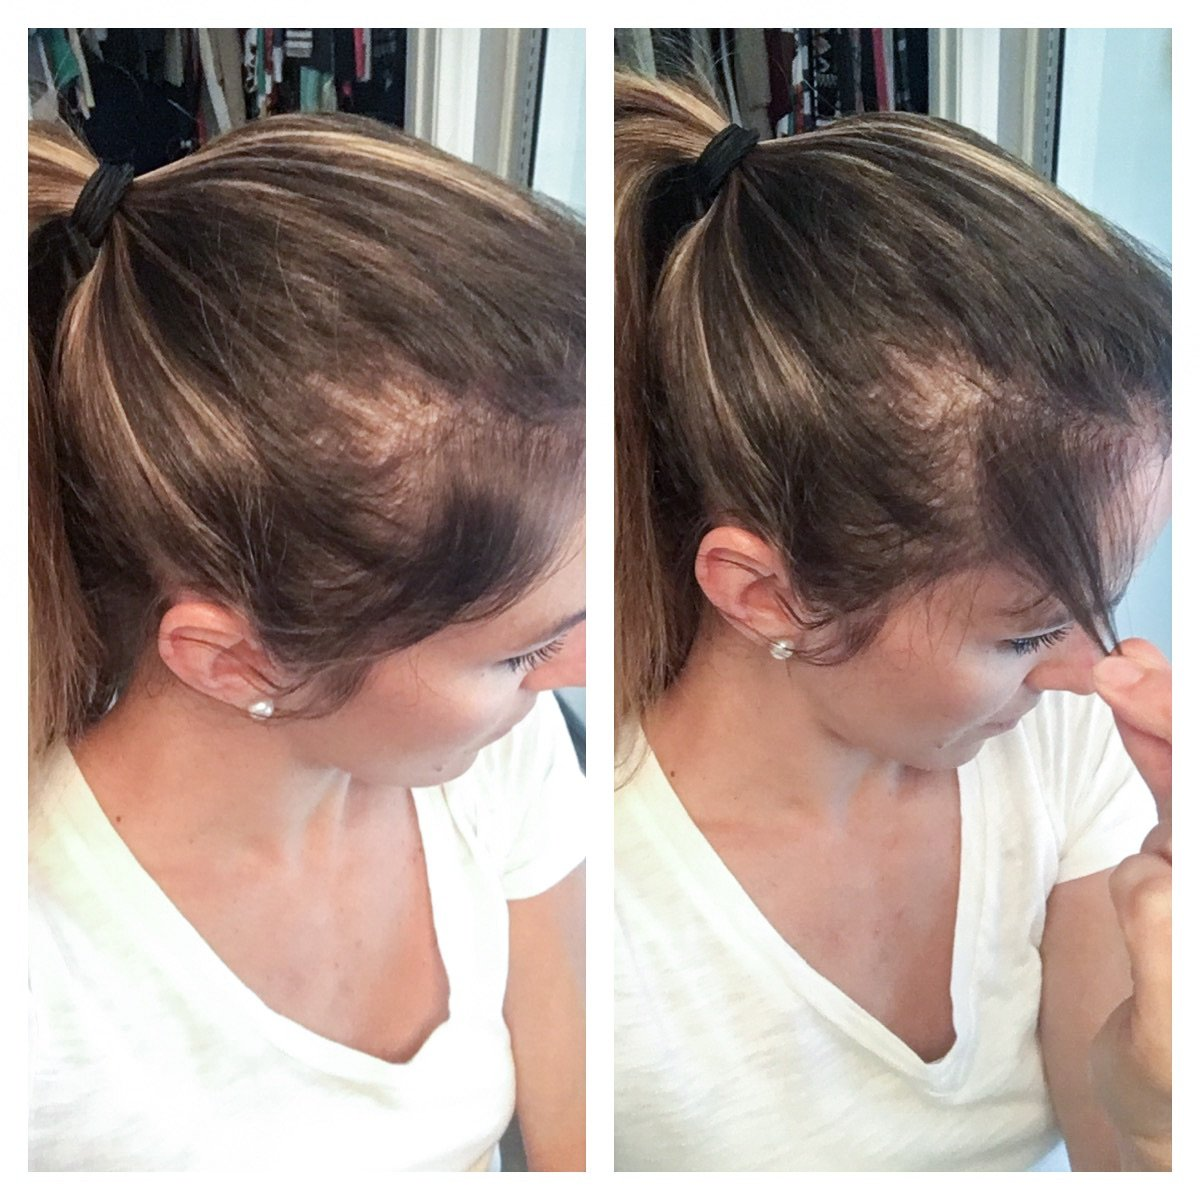 Postpartum hair loss and taking collagen supplements